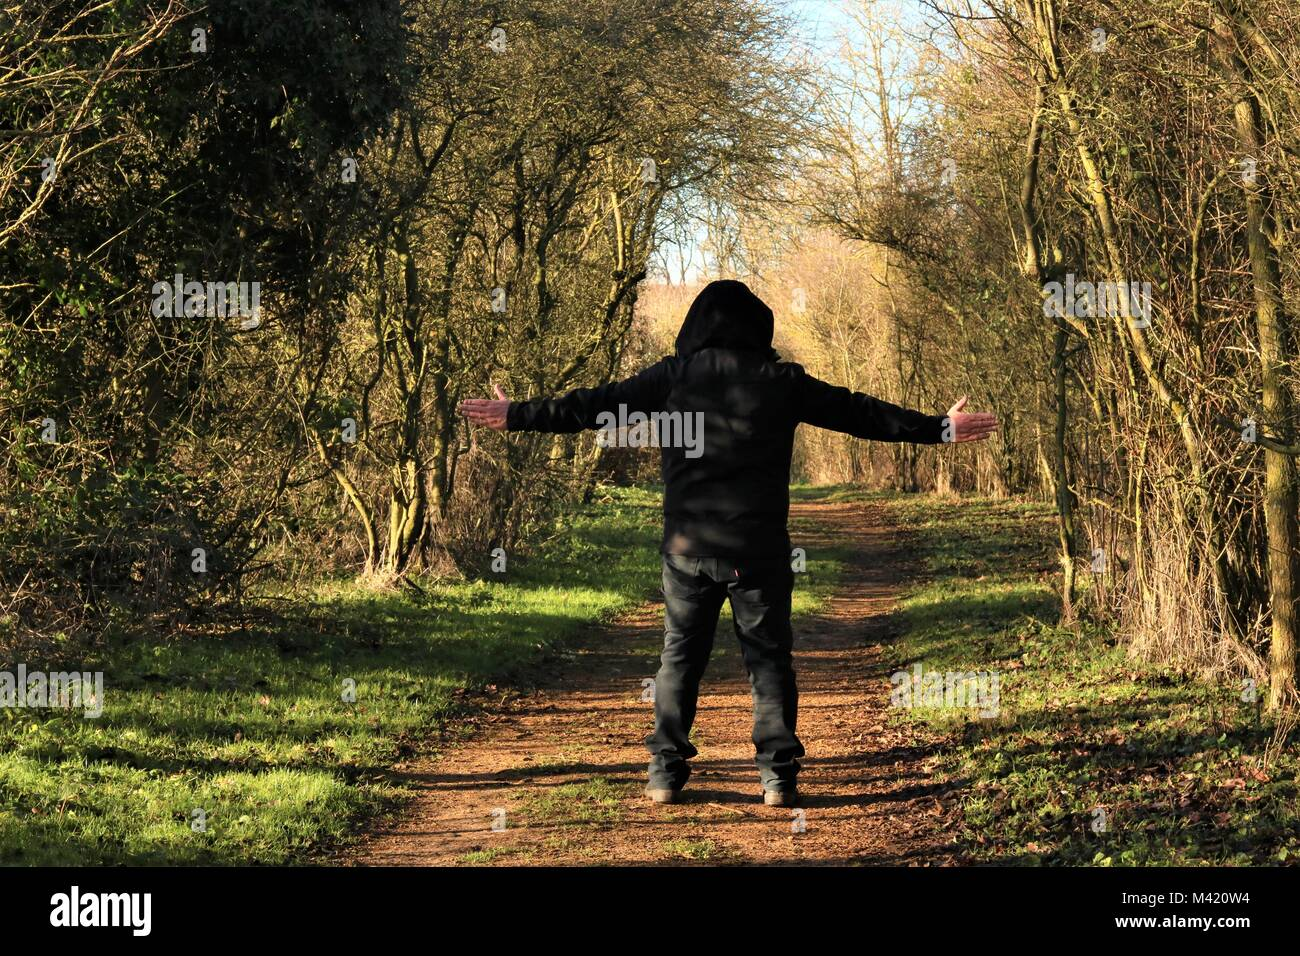 Man wearing hoody with arms outstretched in the countryside on a sunny Winter's day - Stock Image